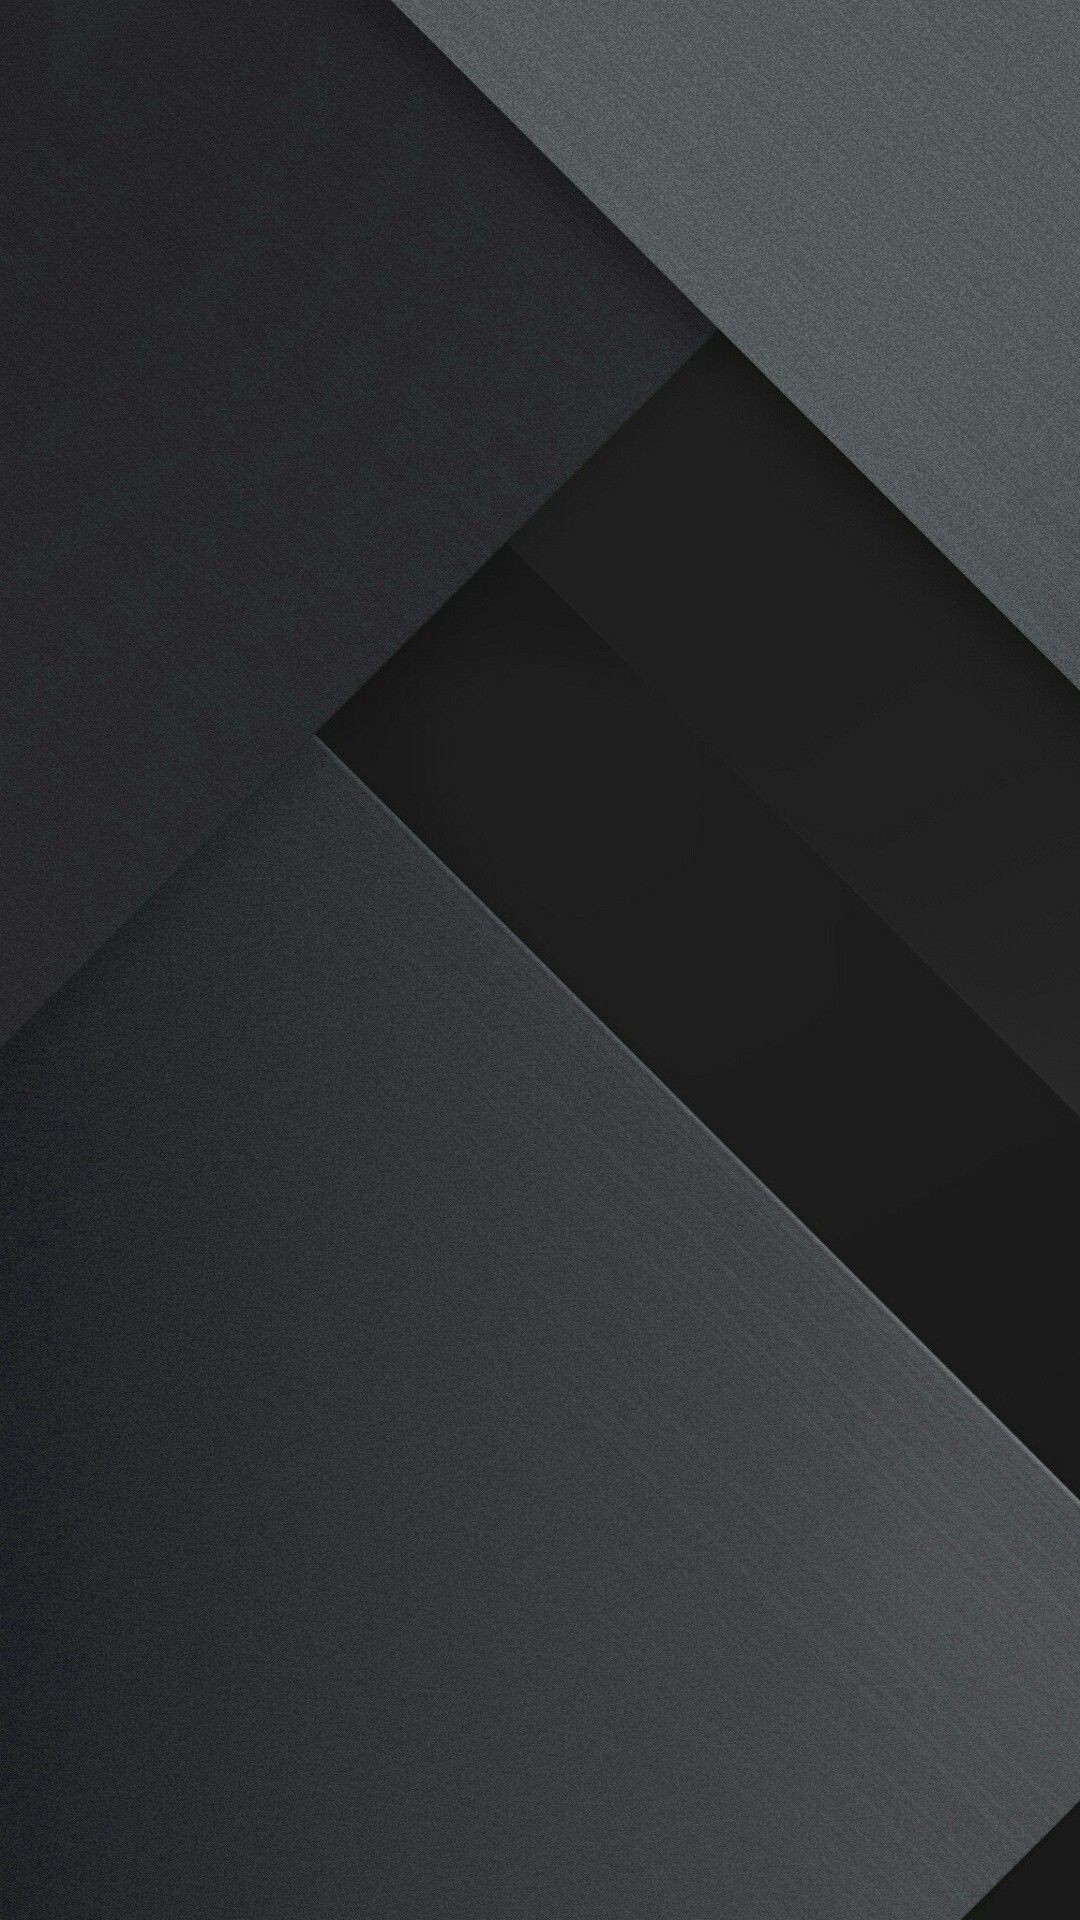 Gray hd wallpaper